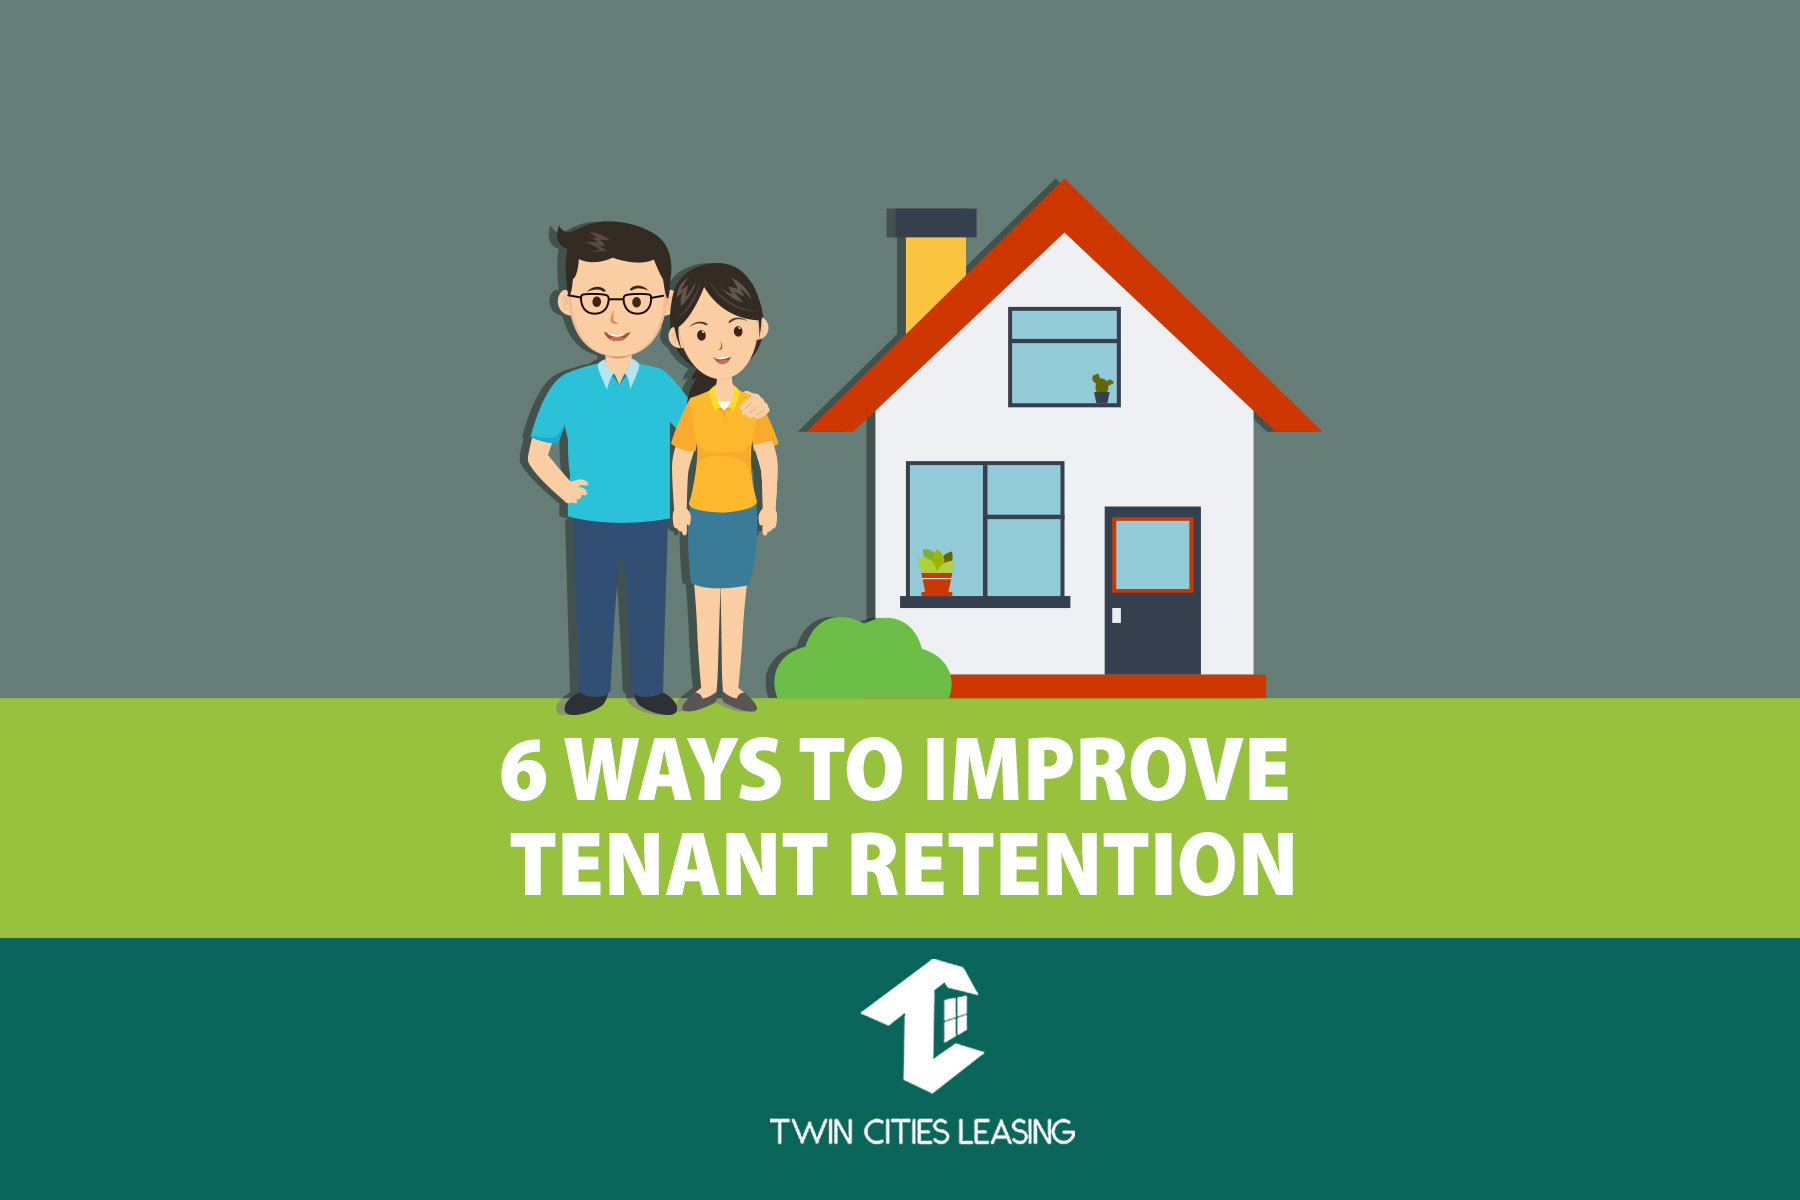 6 Ways to Improve Tenant Retention